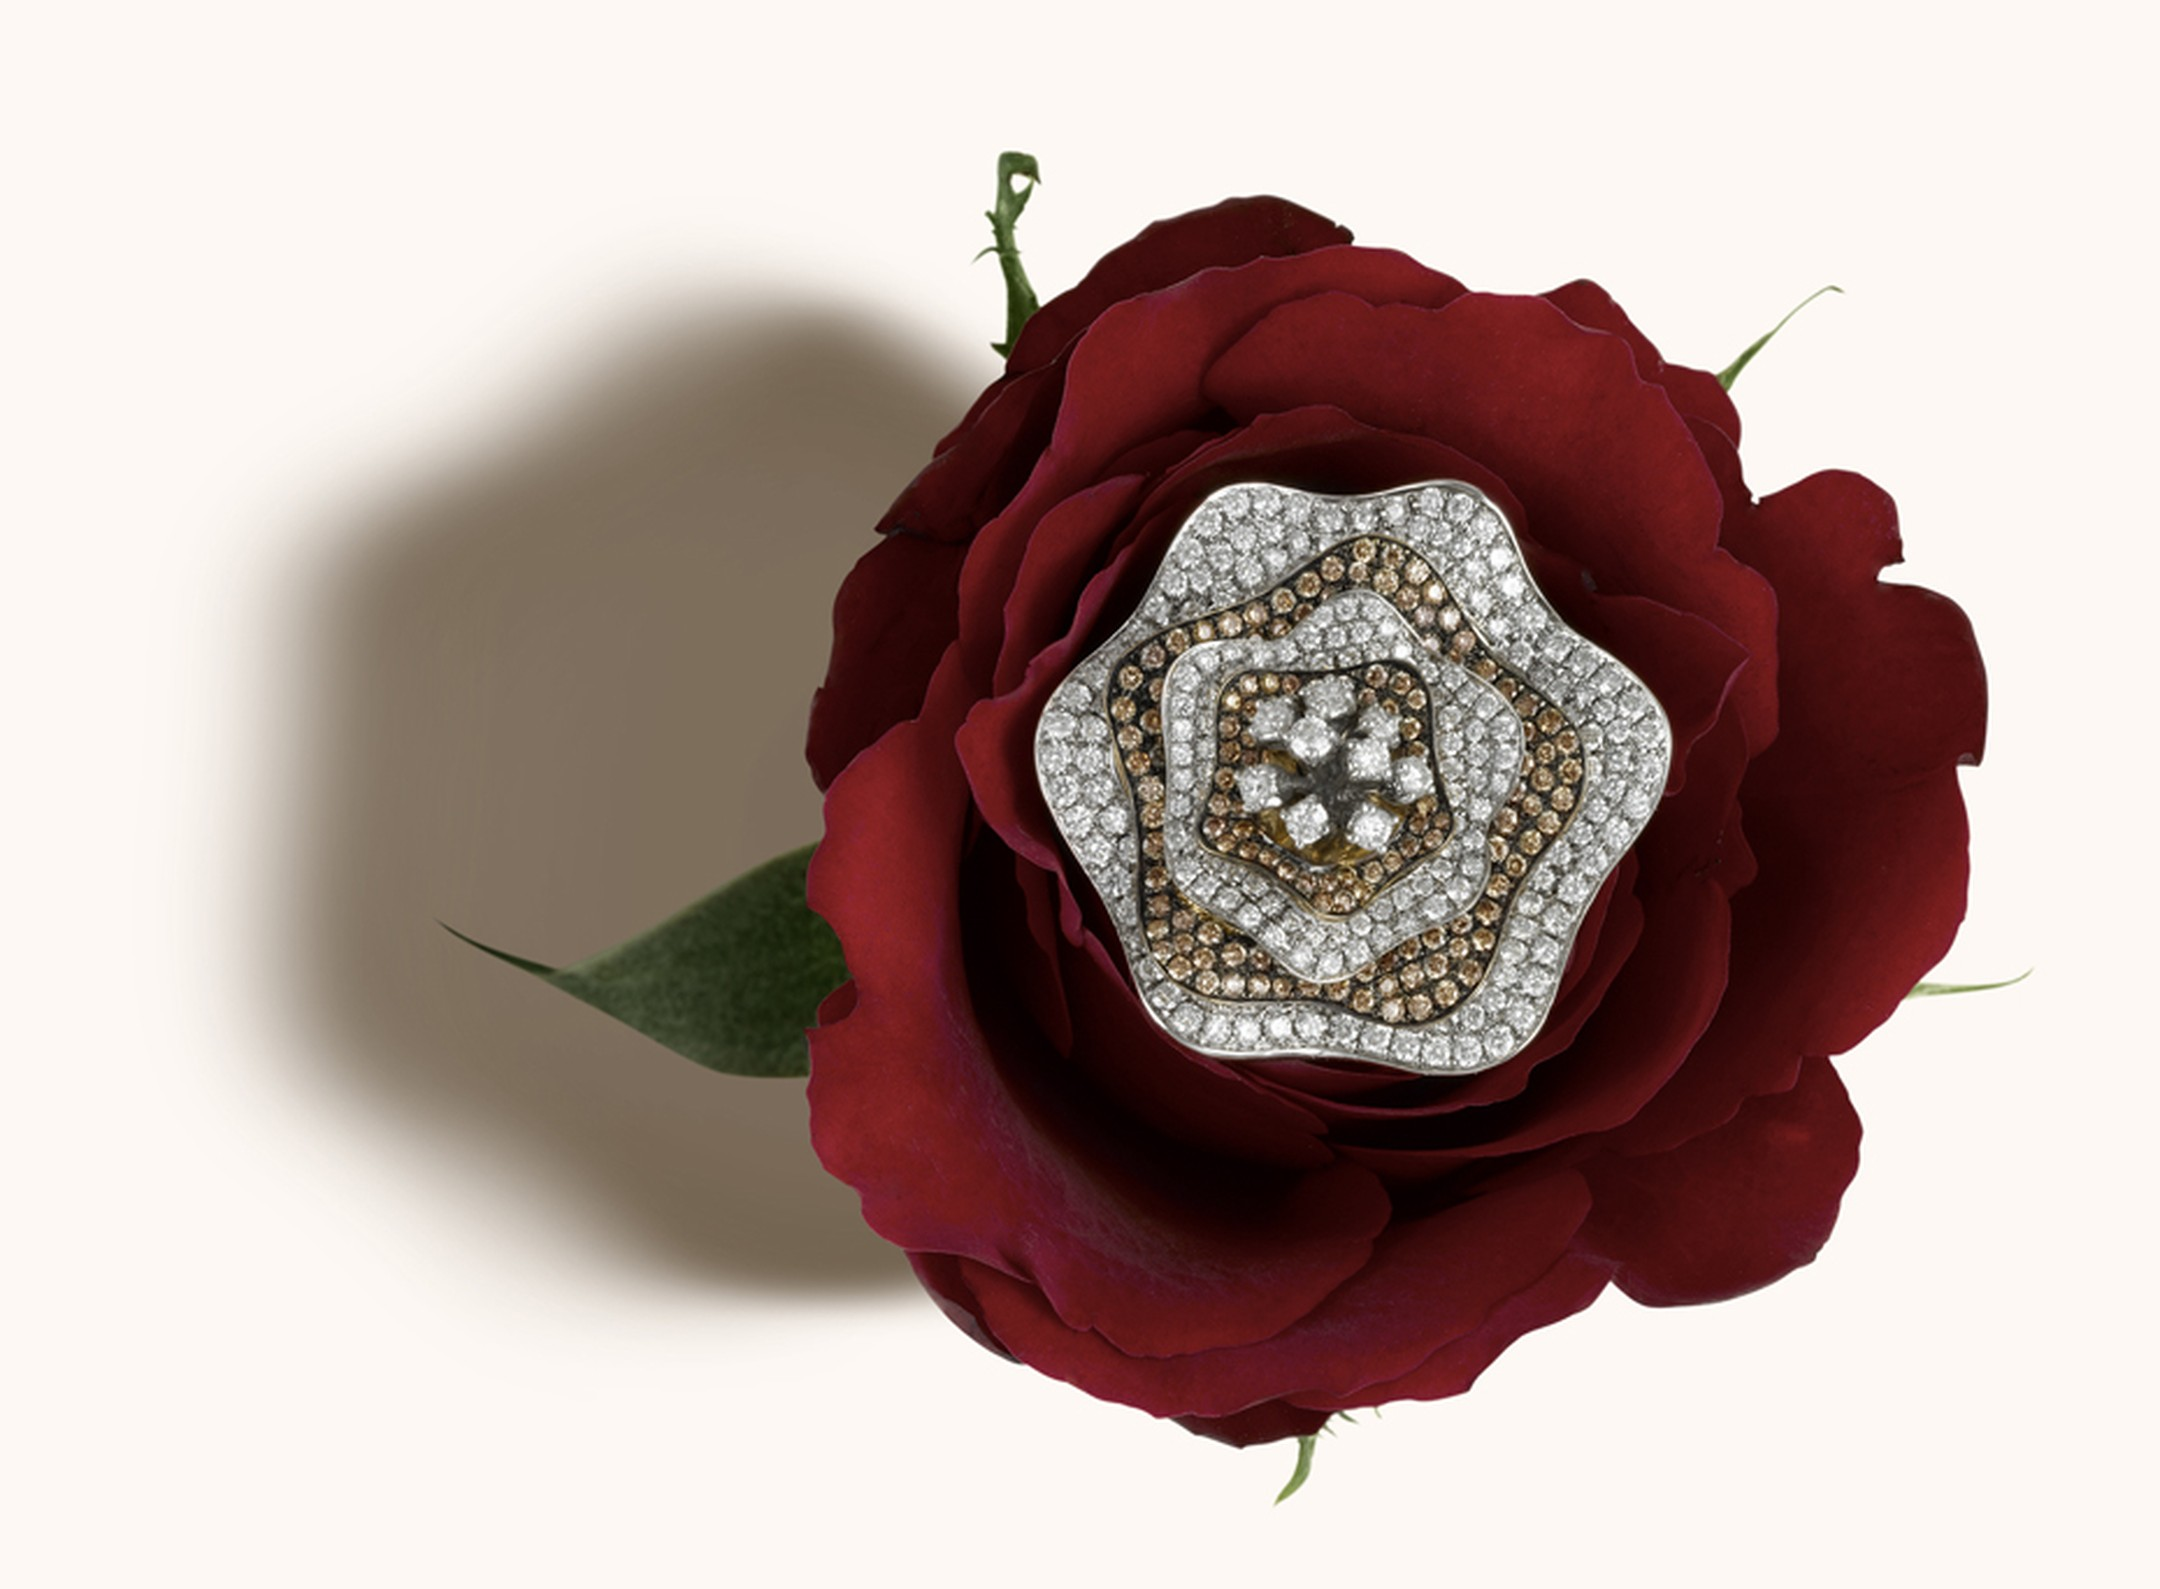 Zoya Espan~a collection exotic rose brooch with champagne and white diamond petals